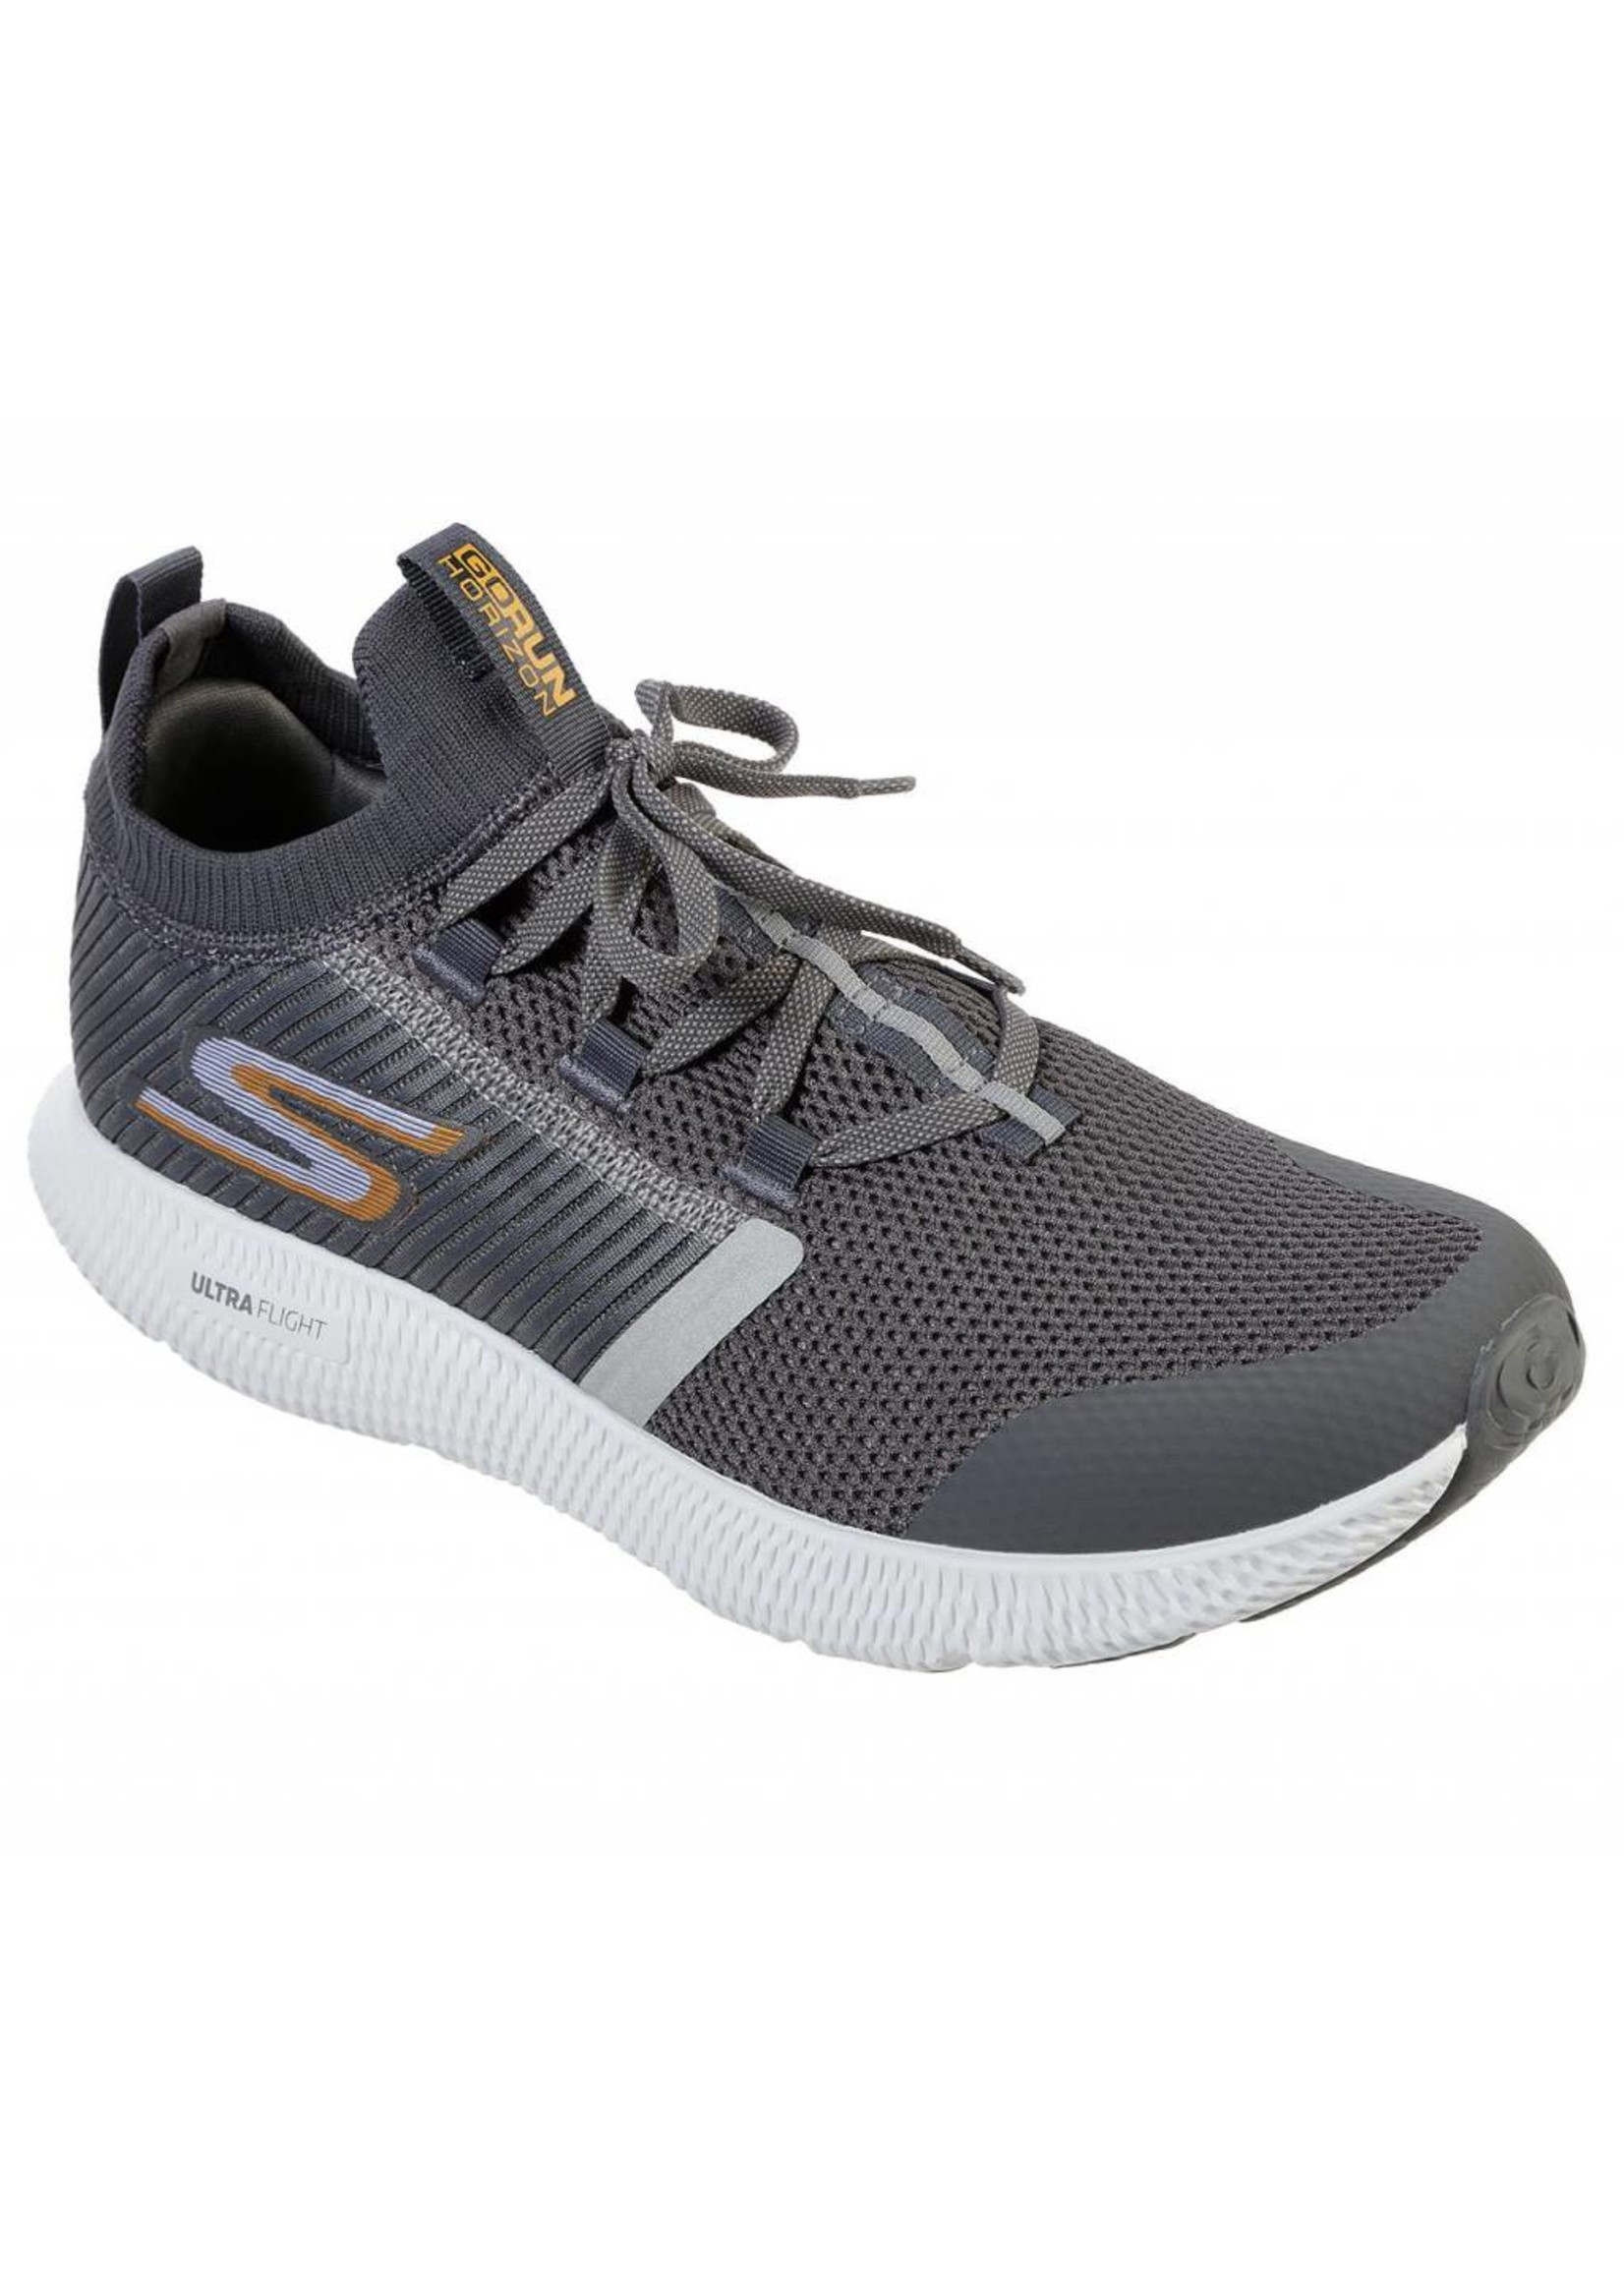 Skechers GO RUN - HORIZON 55217